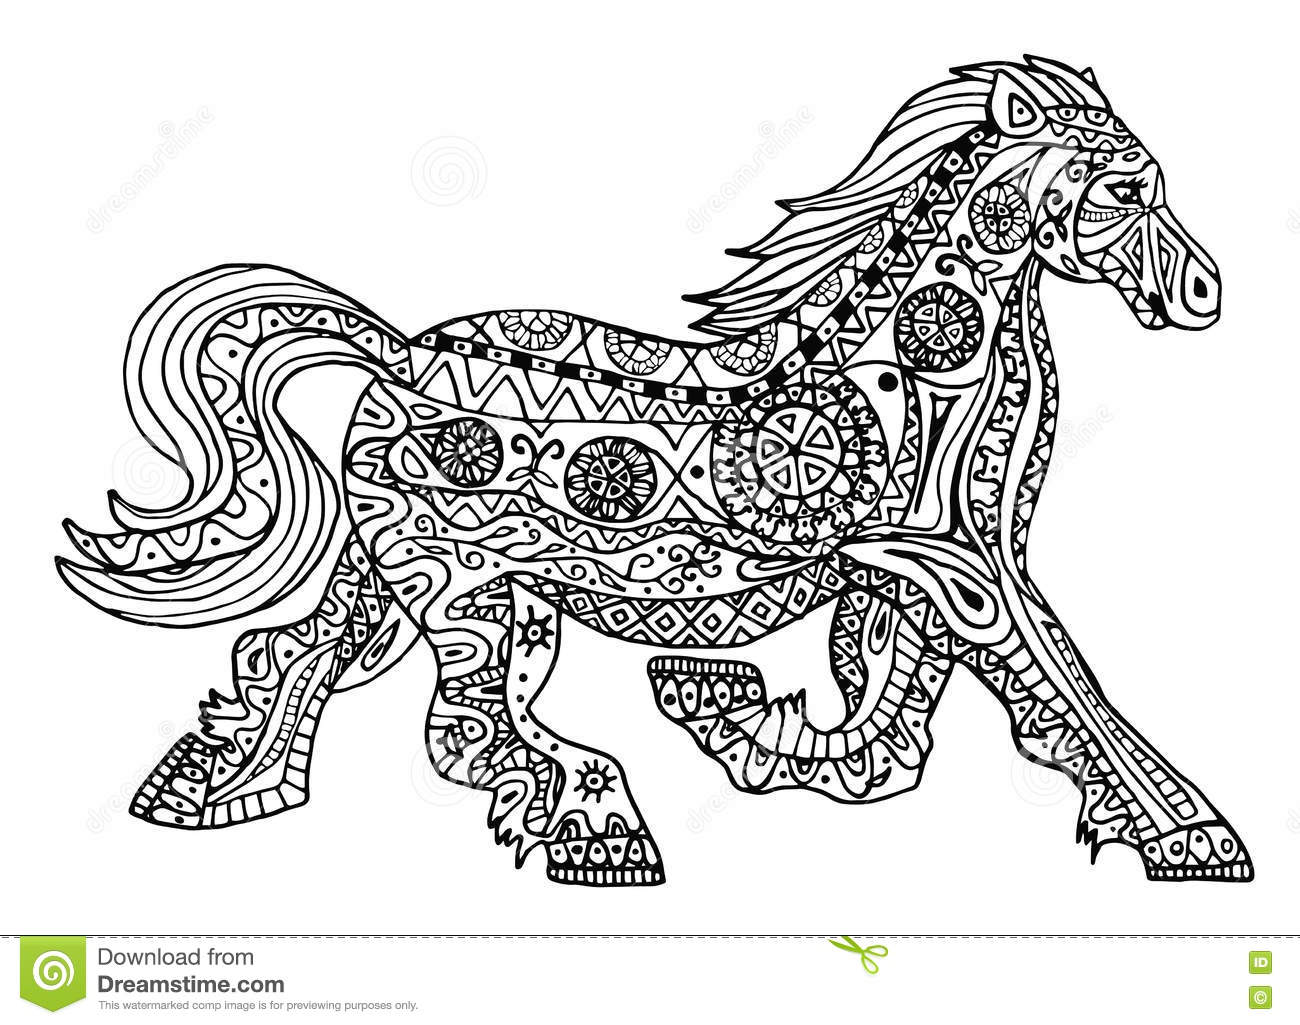 The Black And White Horse Print With Ethnic Zentangle Patterns